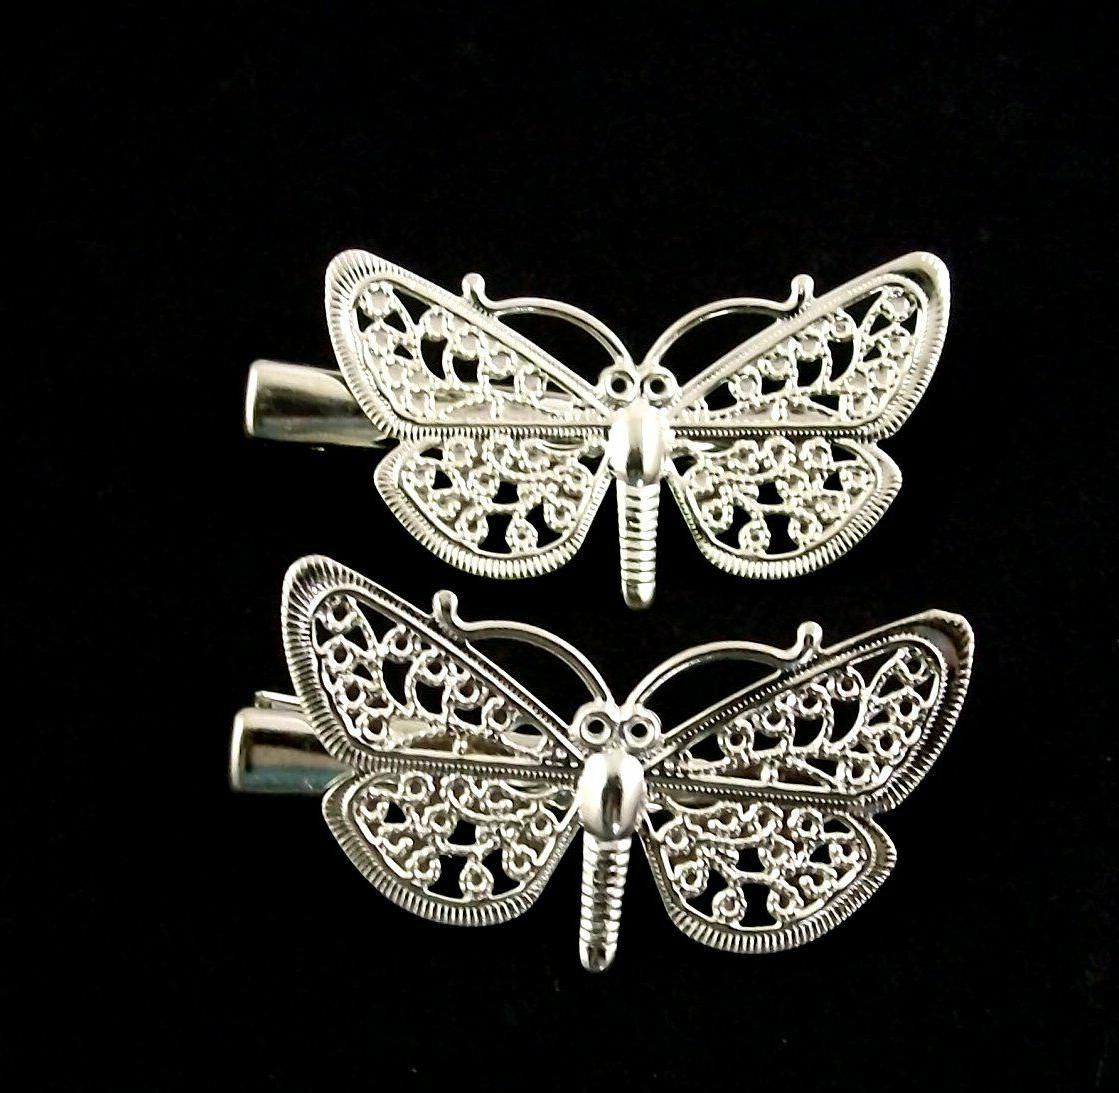 2 x silver filagree type hair clips